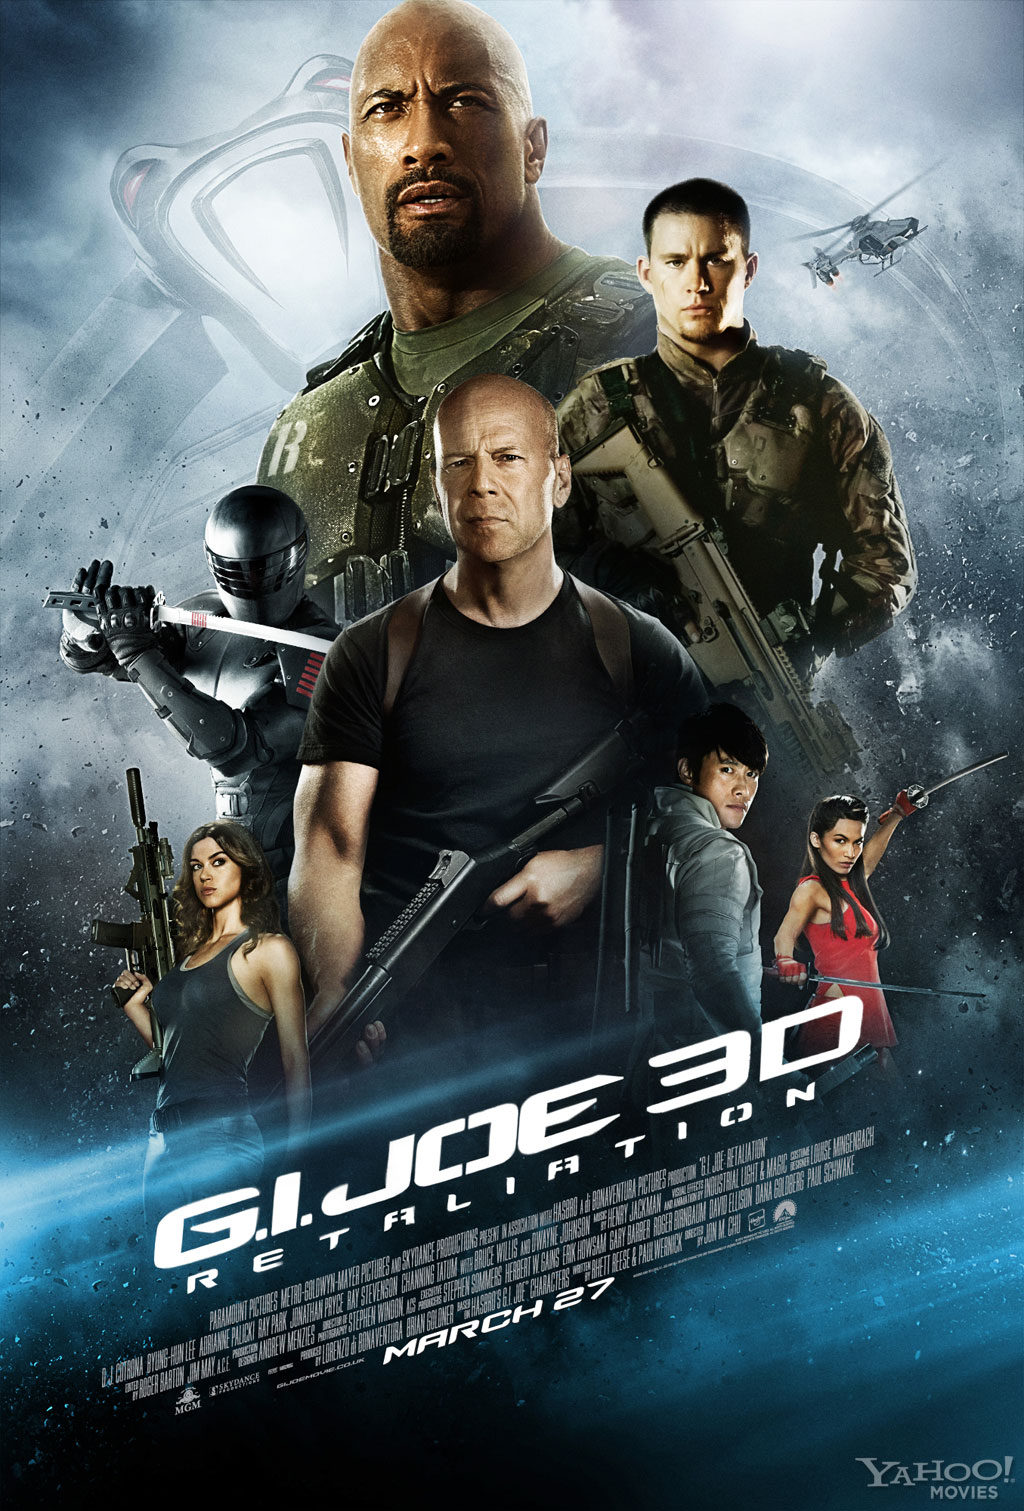 gijoe international watermark jpg 163728 G.I. Joe: Retaliation